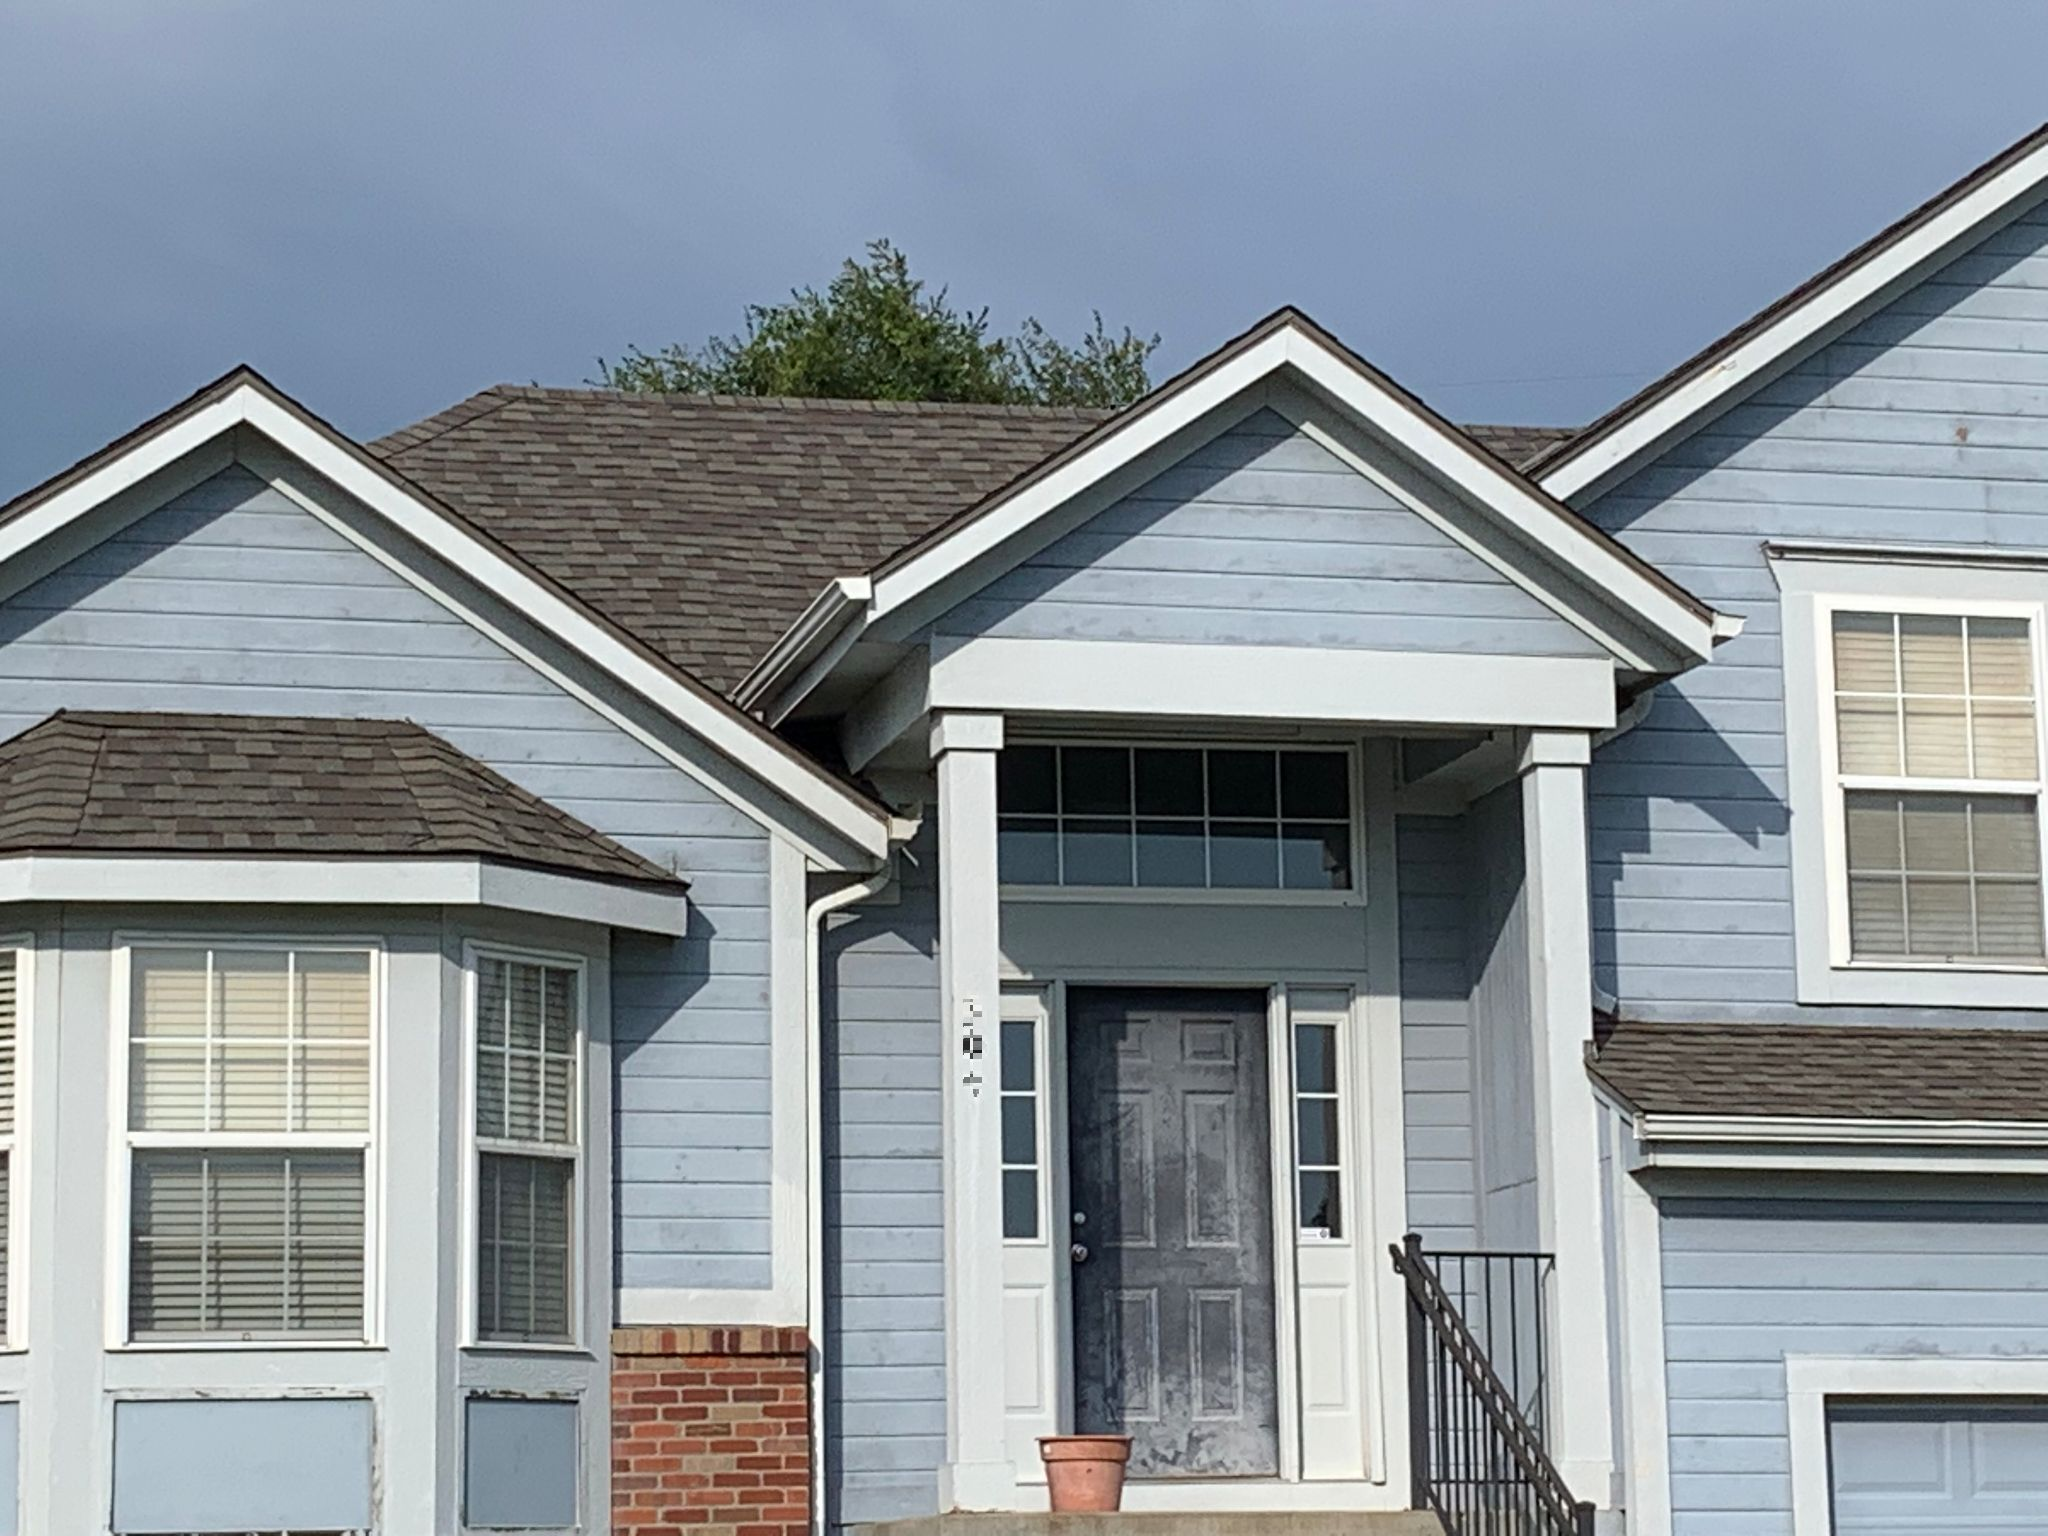 residential roofing company - buck roofing - kansas and missouri - certainteed landmark - weathered wood